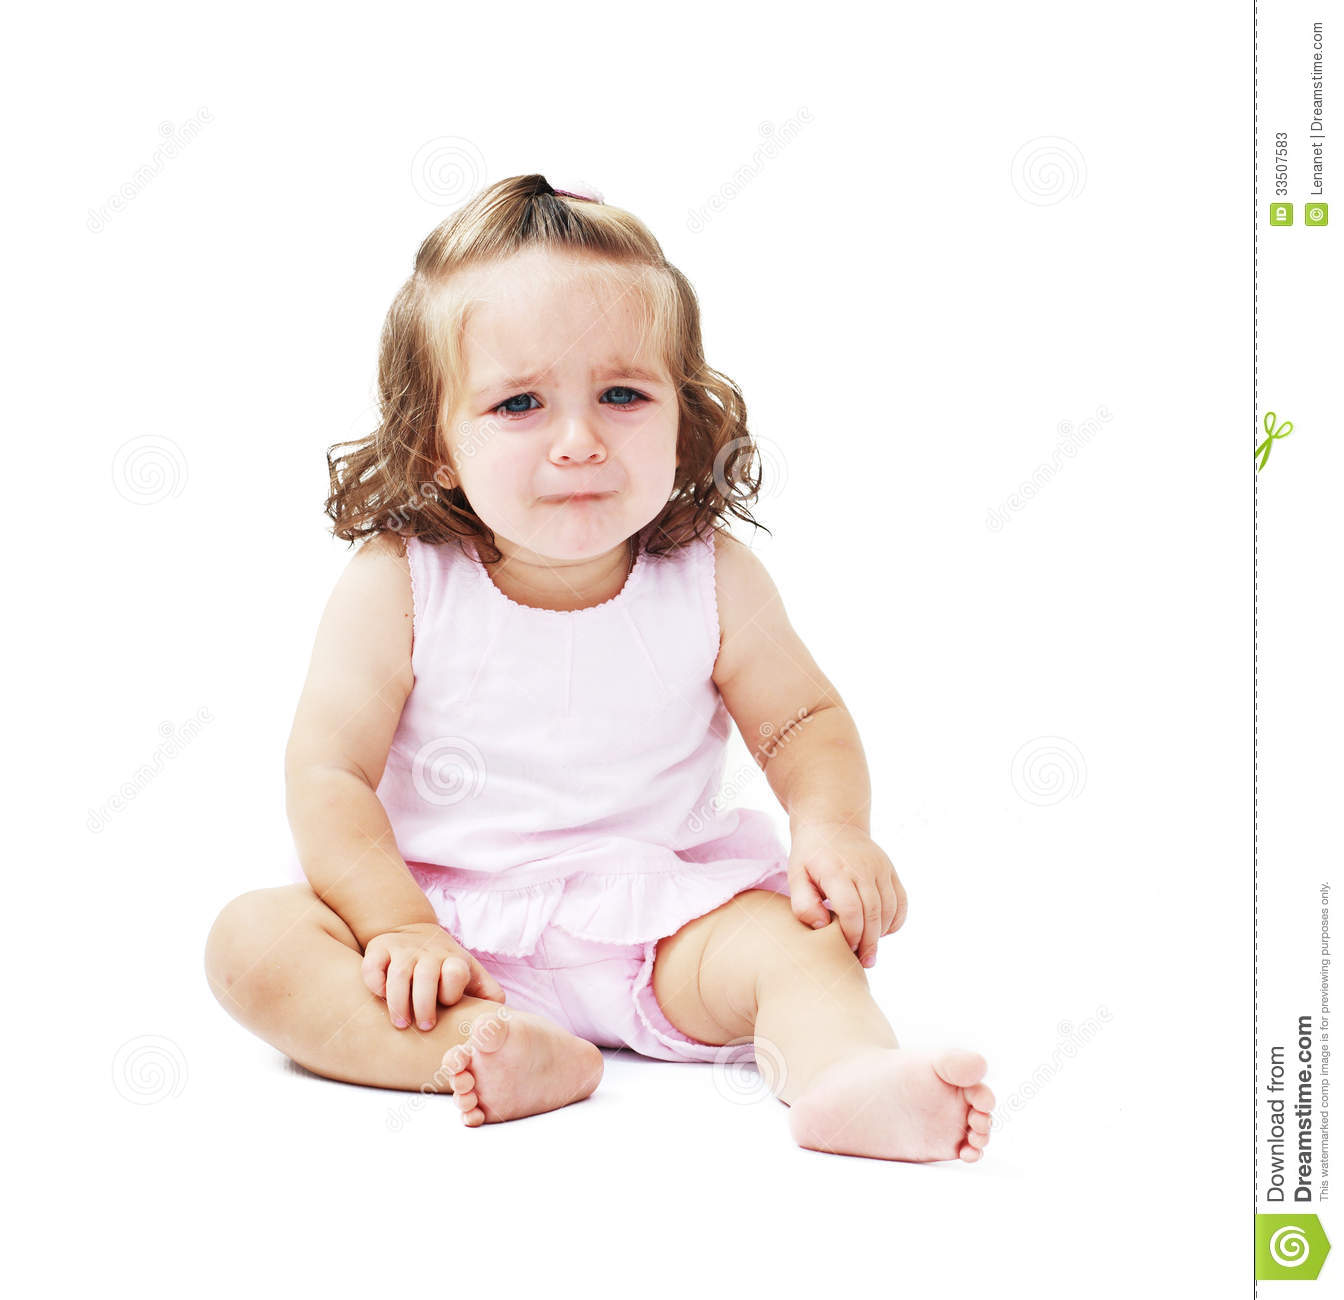 little baby girl crying stock image. image of pain, expressive